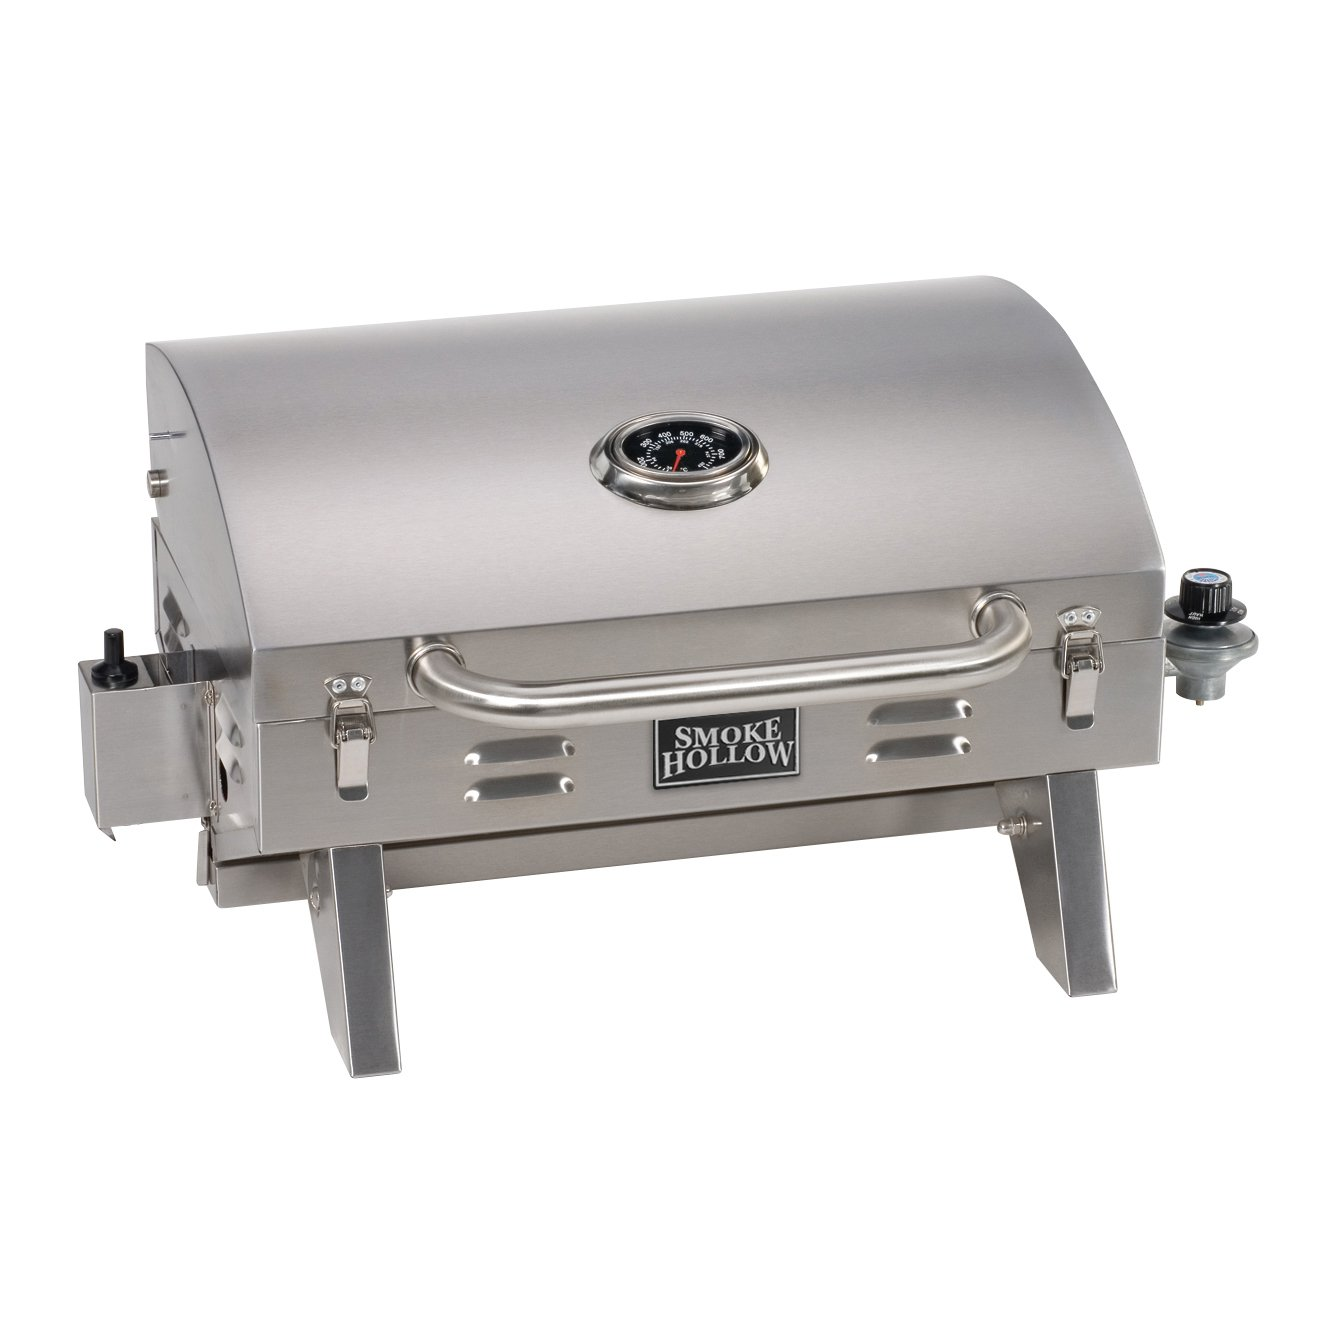 Smoke Hollow 205 - best tailgate grill